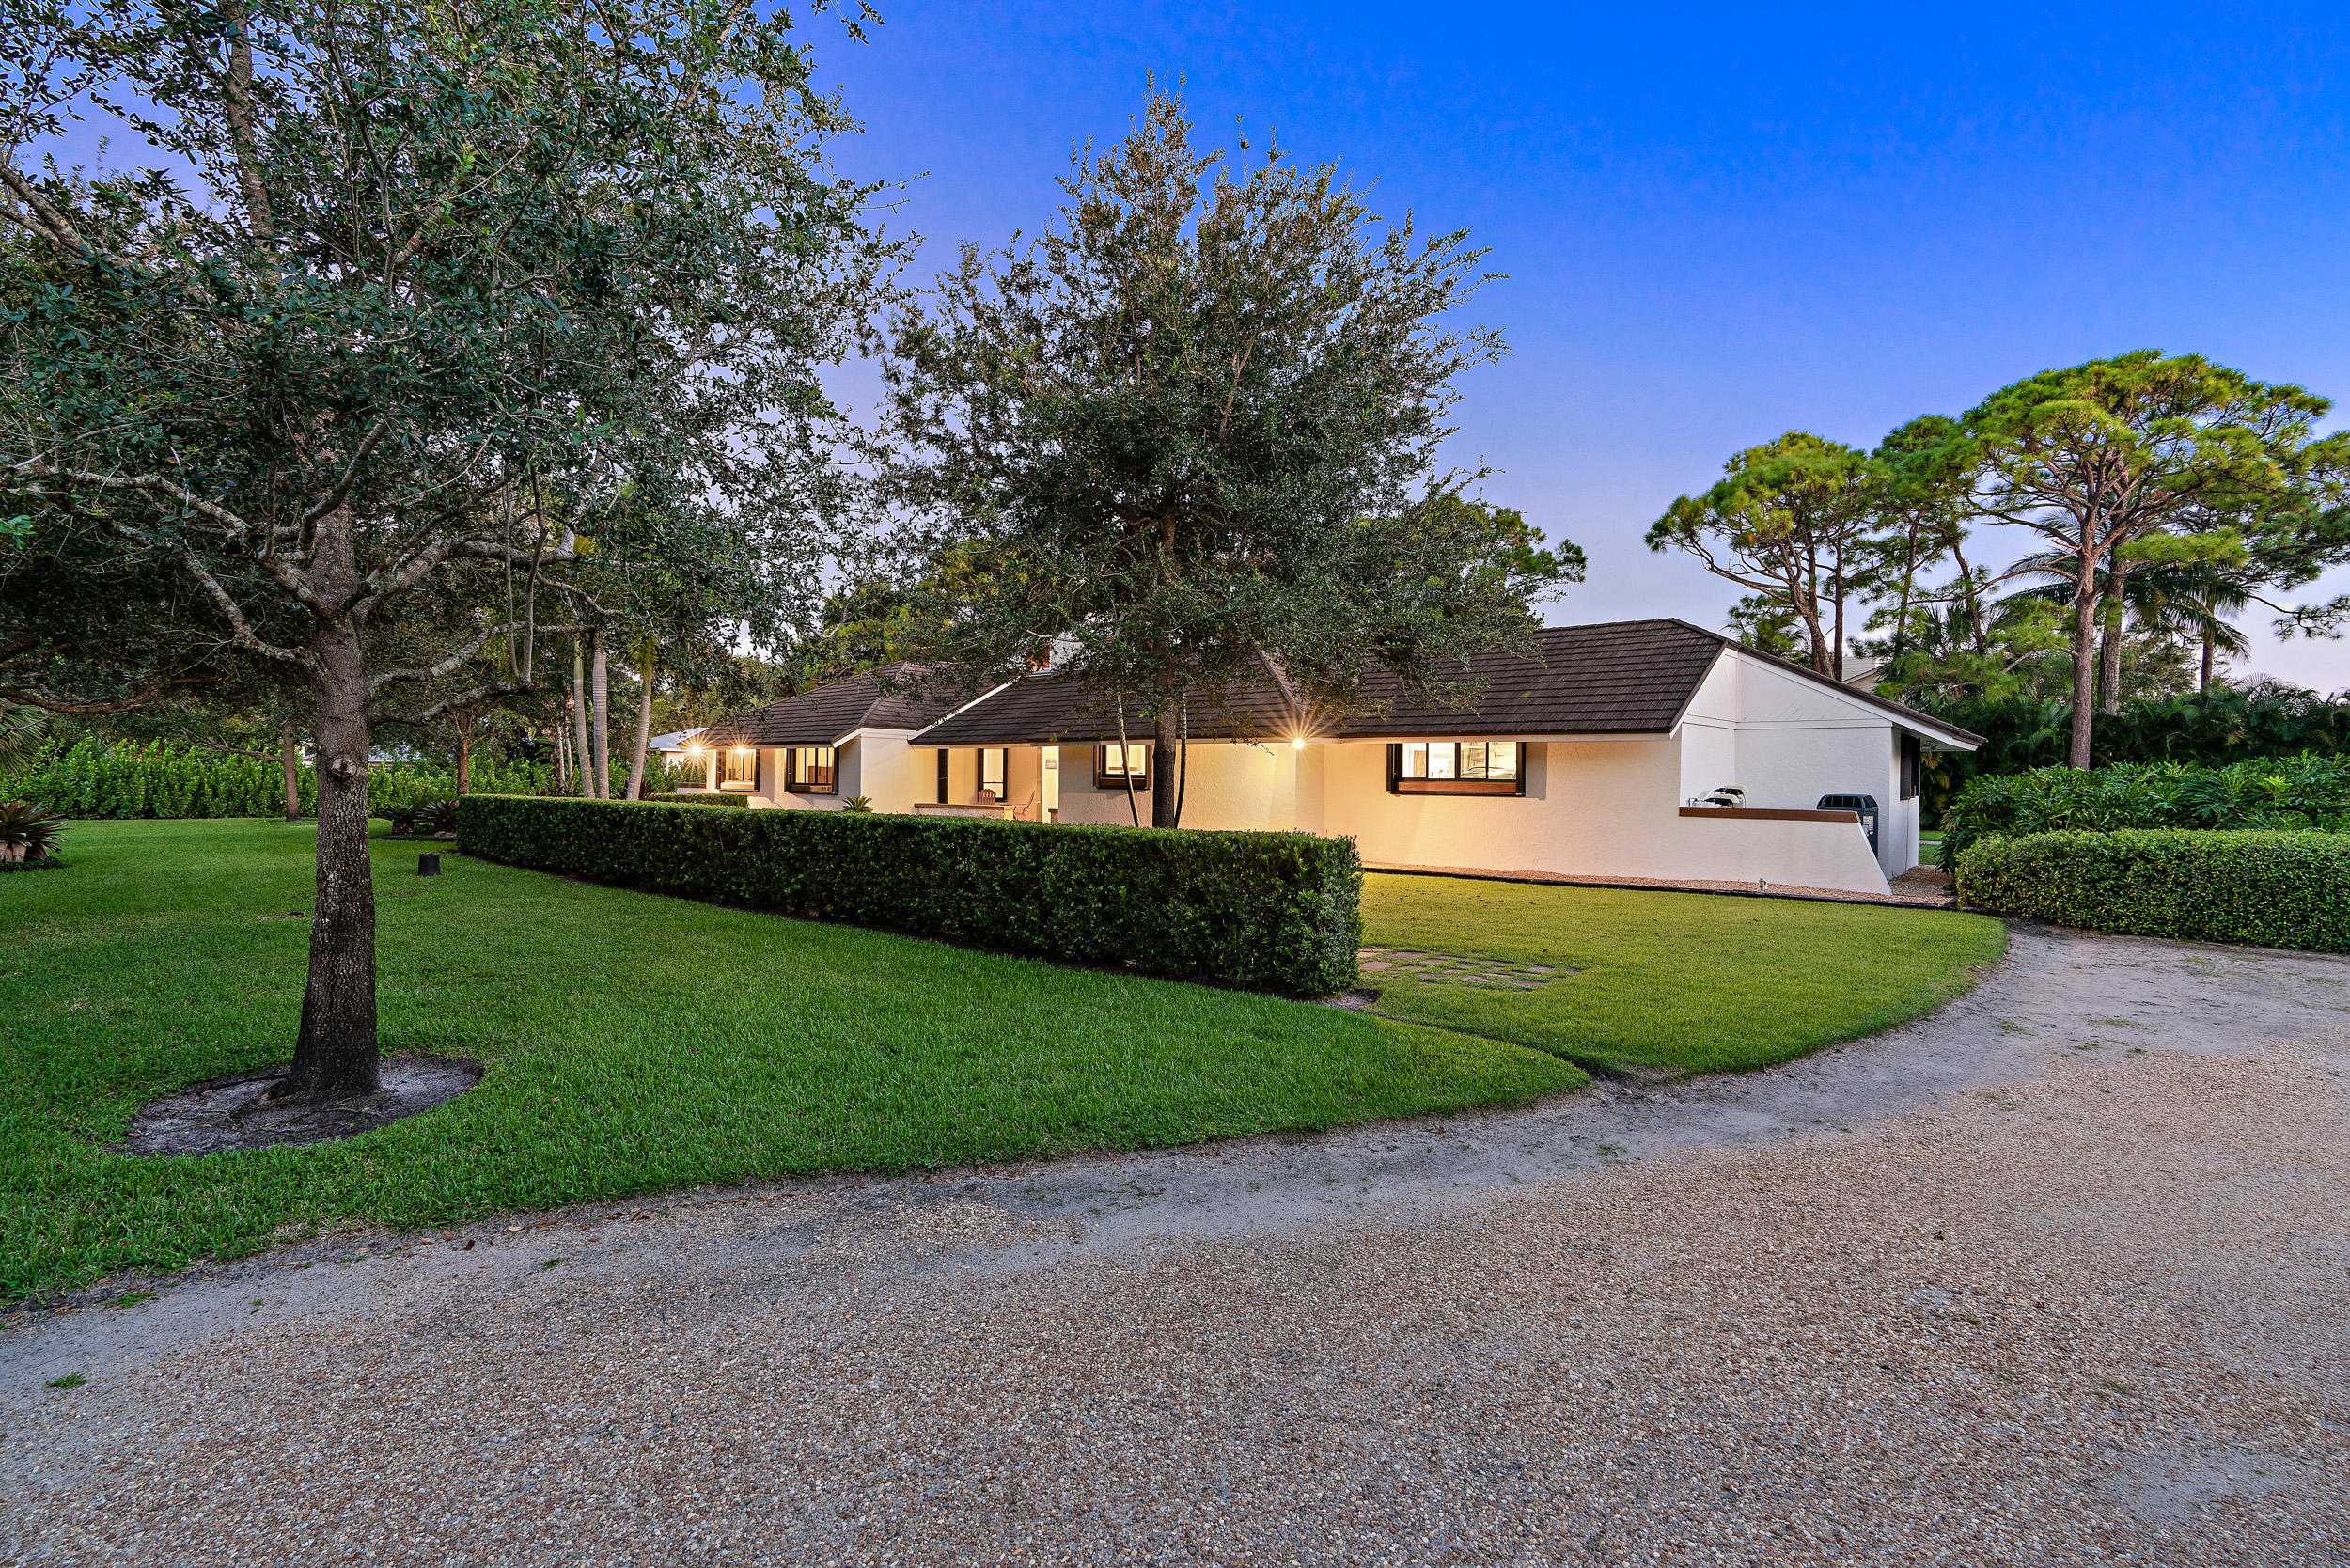 IMPECCABLE single-story CBS (concrete block construction) pool home located off the highly sought after Loxahatchee River Road! Situated on 1 FULL ACRE of land (!!!) and with a brand new pool, 50 year+ metal roof, lush custom landscaping, and impact windows, this home will check every single box of your search criteria and more! 6422 Fox Run Circle will sweep you off your feet from the moment you set foot on the HUGE property and enter the home's front door! Enjoy an expansive open layout with vaulted ceilings, charming wood beams and millwork, beautiful 20 inch Coquina coral tile flooring throughout, and a real coral stone fireplace. You will love the newly renovated modern kitchen featuring gorgeous tile backsplash, executive cabinetry, quartzite countertops, and [click to read more]   Kenmore Pro double ovens. This custom chef's kitchen boasts ample storage and space with a spacious pantry and a cook island. --- Retreat to your master bedroom to find a sprawling suite with soaring ceilings complemented by wooden beams, and an ensuite with a custom, real wood vanity, a frameless shower, and a linen closet. --- The backyard at 6422 is the perfect place to relax and enjoy the South Florida tropical climate with a new sparkling, salt-water swimming pool with lights and PebbleTec completed in 2017 by RHR pools. With its extensive, lush landscaping with clusia and areca palm trees, fountains and custom cabana bath with a walk-in shower, you'll want to spend every moment in your backyard soaking up the sun and hosting friends and family for pool days and barbecues. --- Other features you will love about this home are the huge laundry room, extensive closet space, a spacious two-car garage and 400 Amp Service Panel for electric. This home has a $45k stone-coated metal roof from 2012 with a 50-year warranty. The 2 ACs are from 2014 and are under a 10-year warranty and its 2 tankless electric water heaters are also from 2014. The home is on well water and a water softening